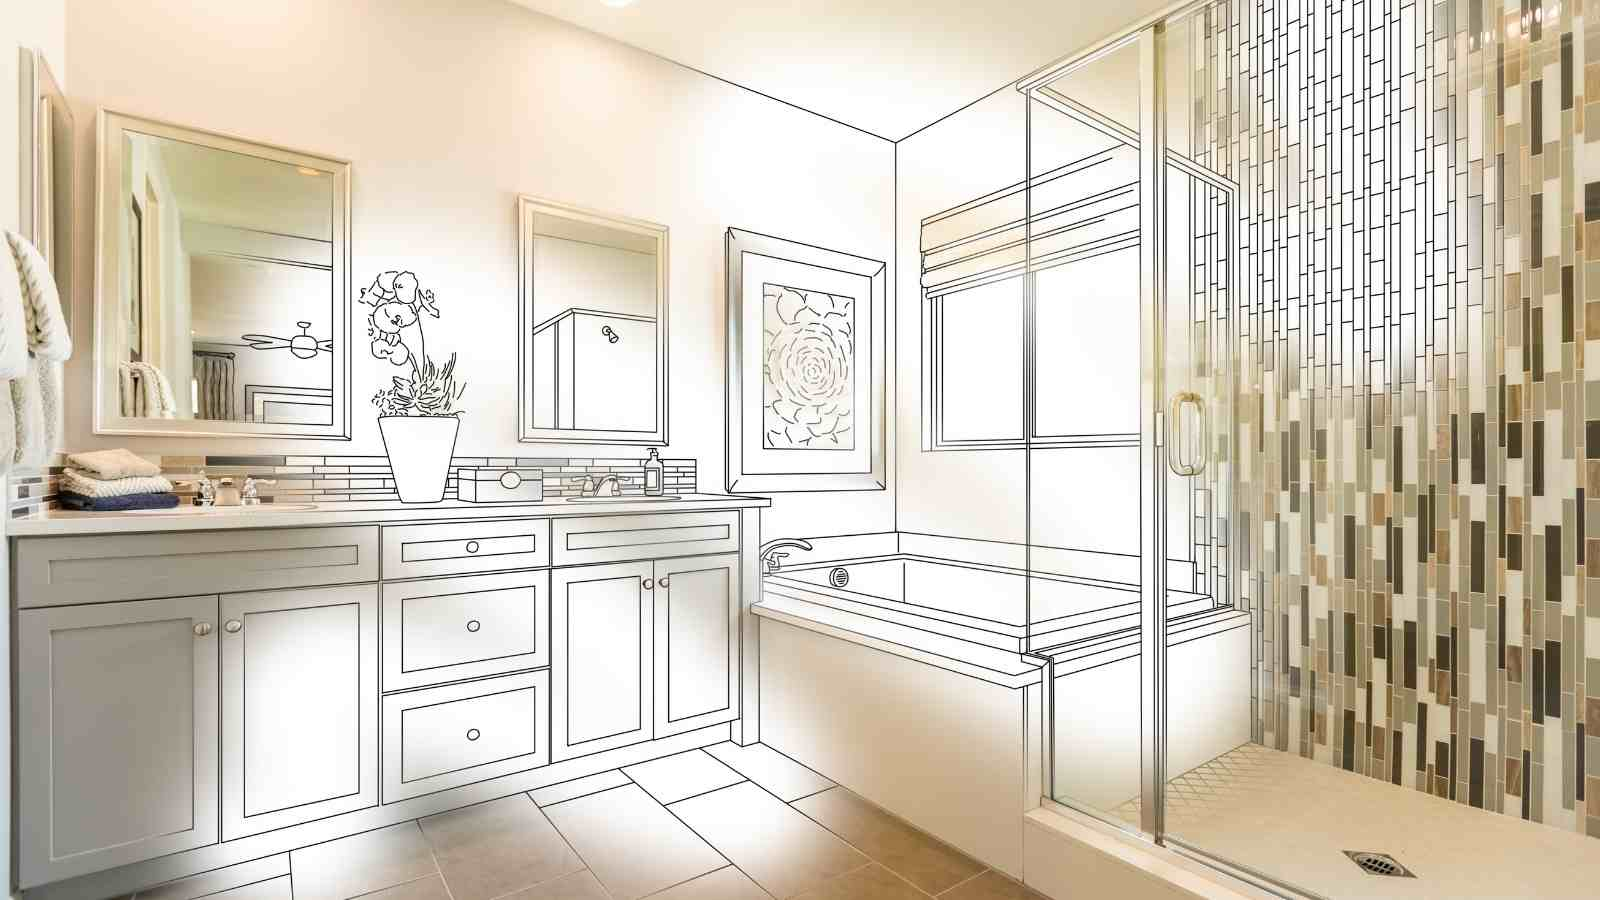 35 amazing bathroom remodel diy ideas that give a stunning for Bathroom renovation designs ideas